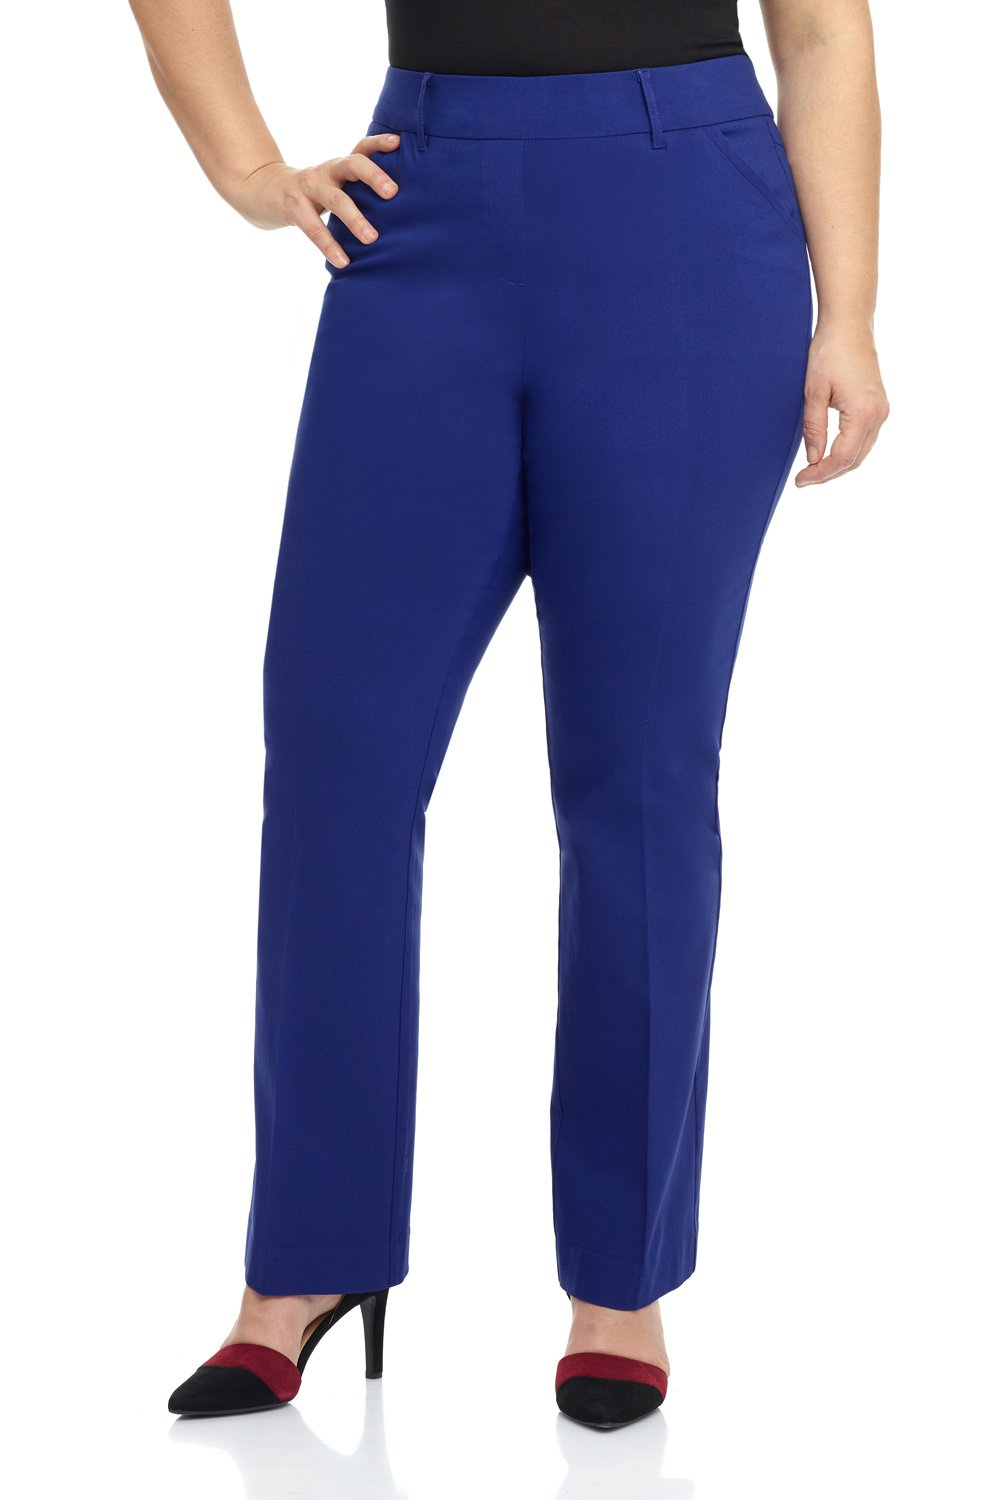 Rekucci Curvy Woman Ease in to Comfort Fit Barely Bootcut Plus Size Pant (16W,Sapphire)